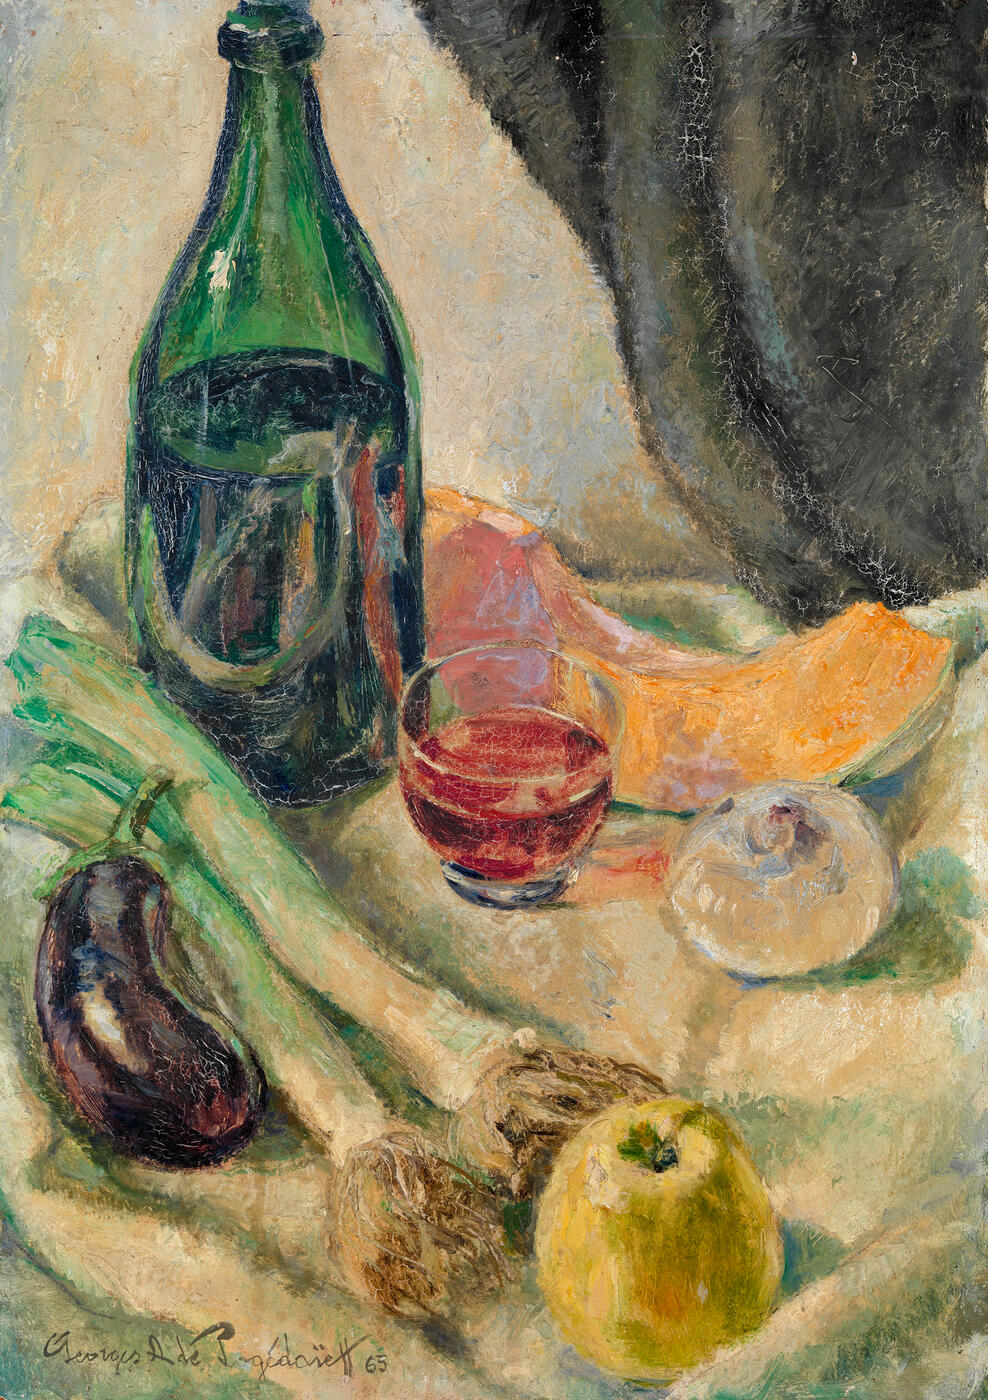 Rustic Still Life with a Bottle of Wine